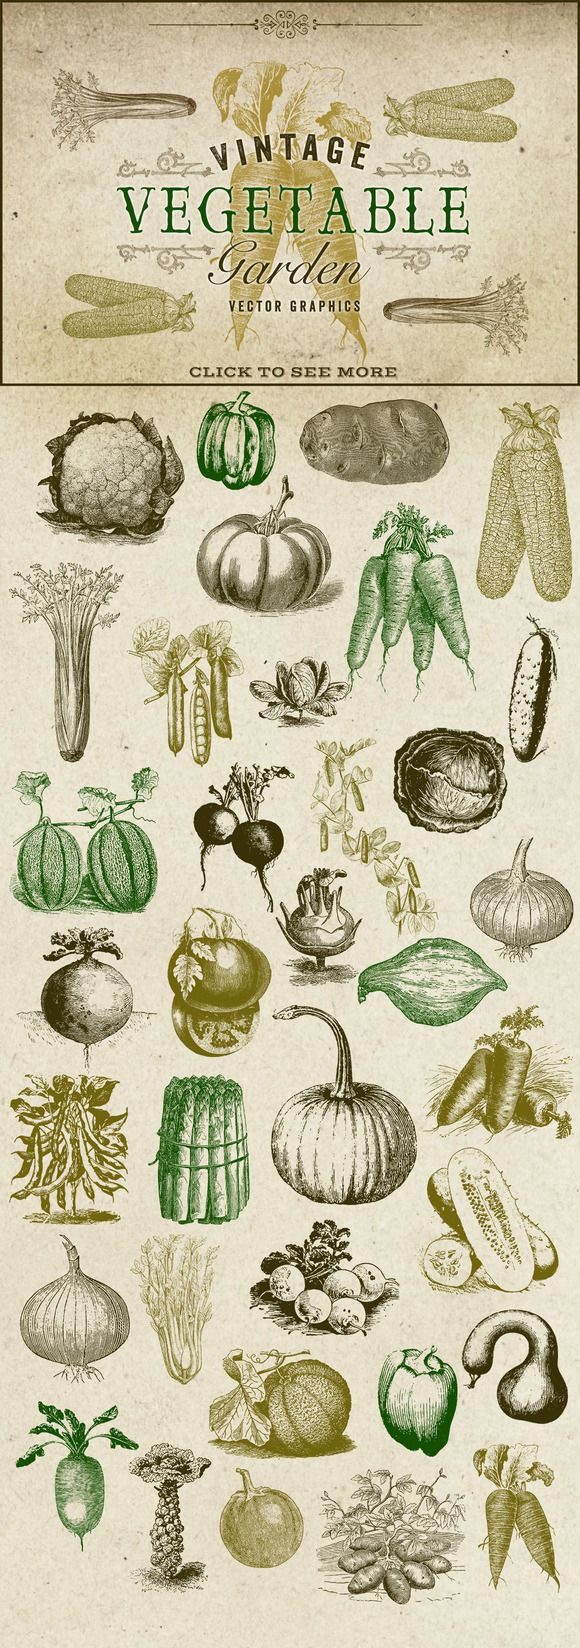 Vintage Vegetable Garden Graphics by Eclectic Anthology on